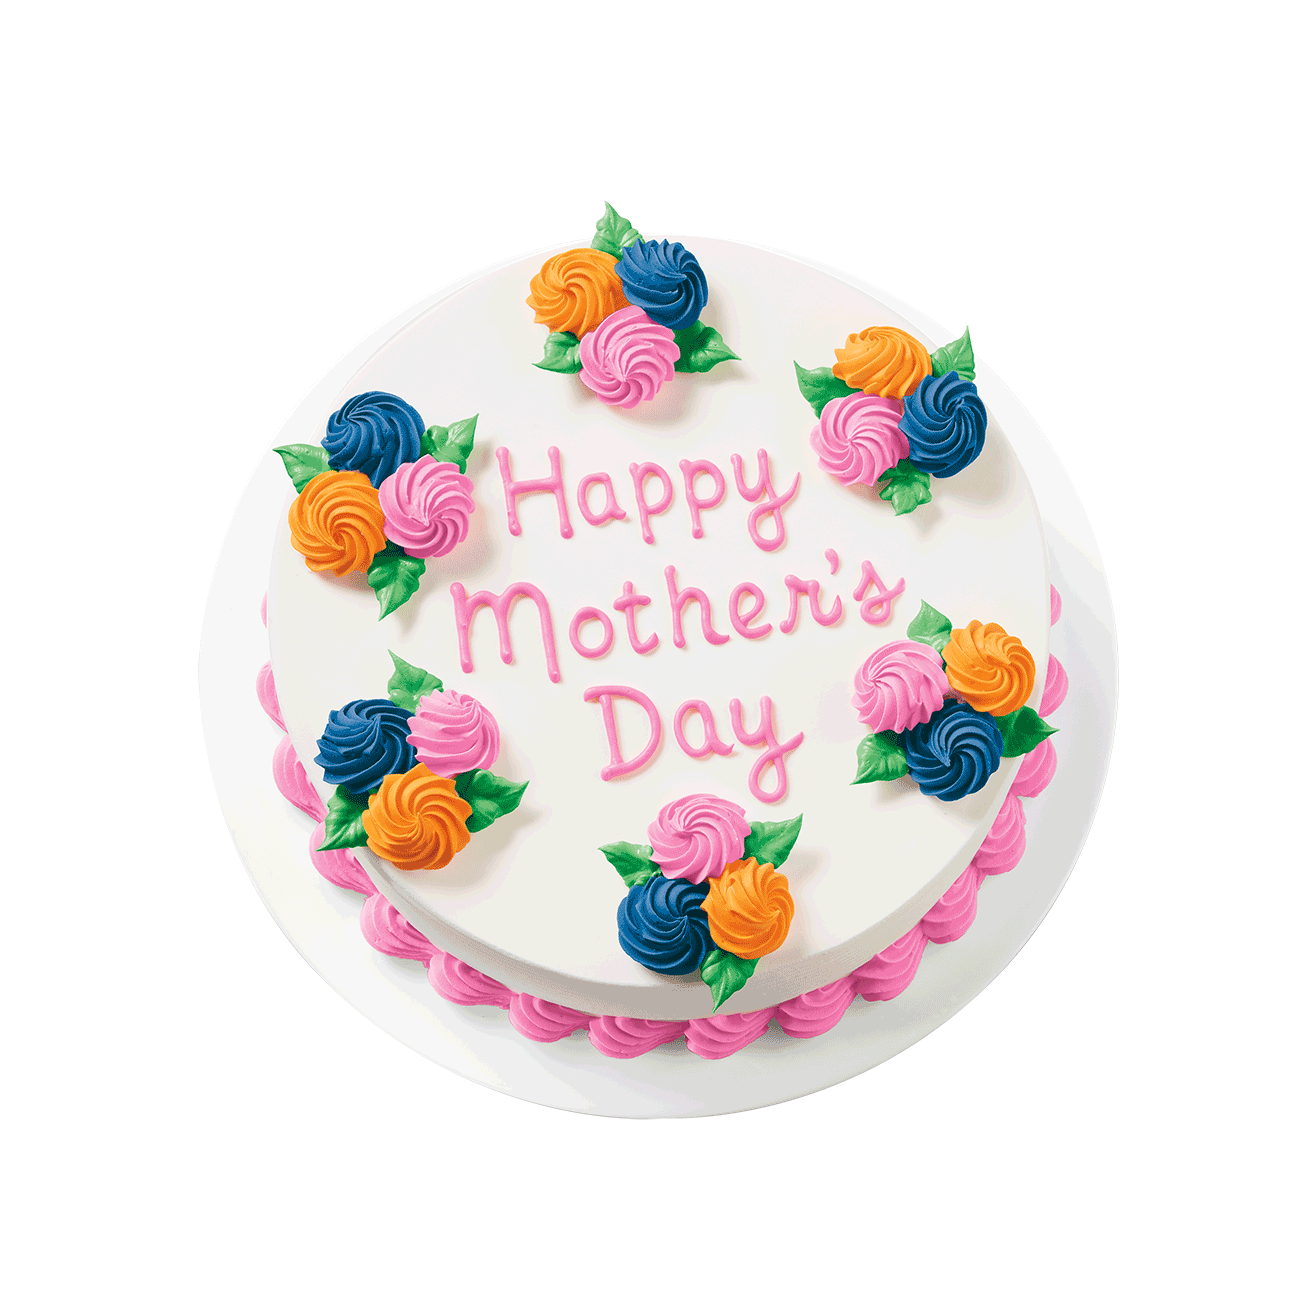 DQ Mothers Day Cake